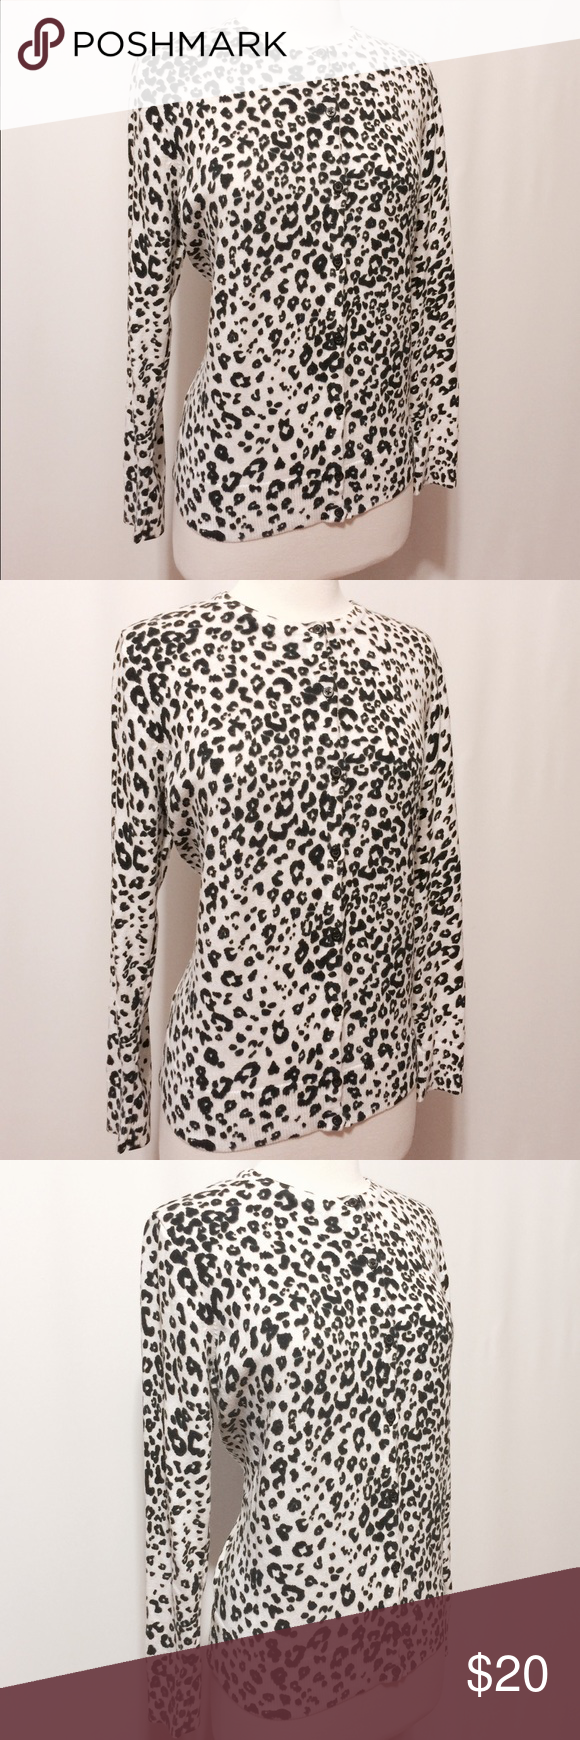 Black & White Animal Flocked Print Cardigans | Snow leopard ...